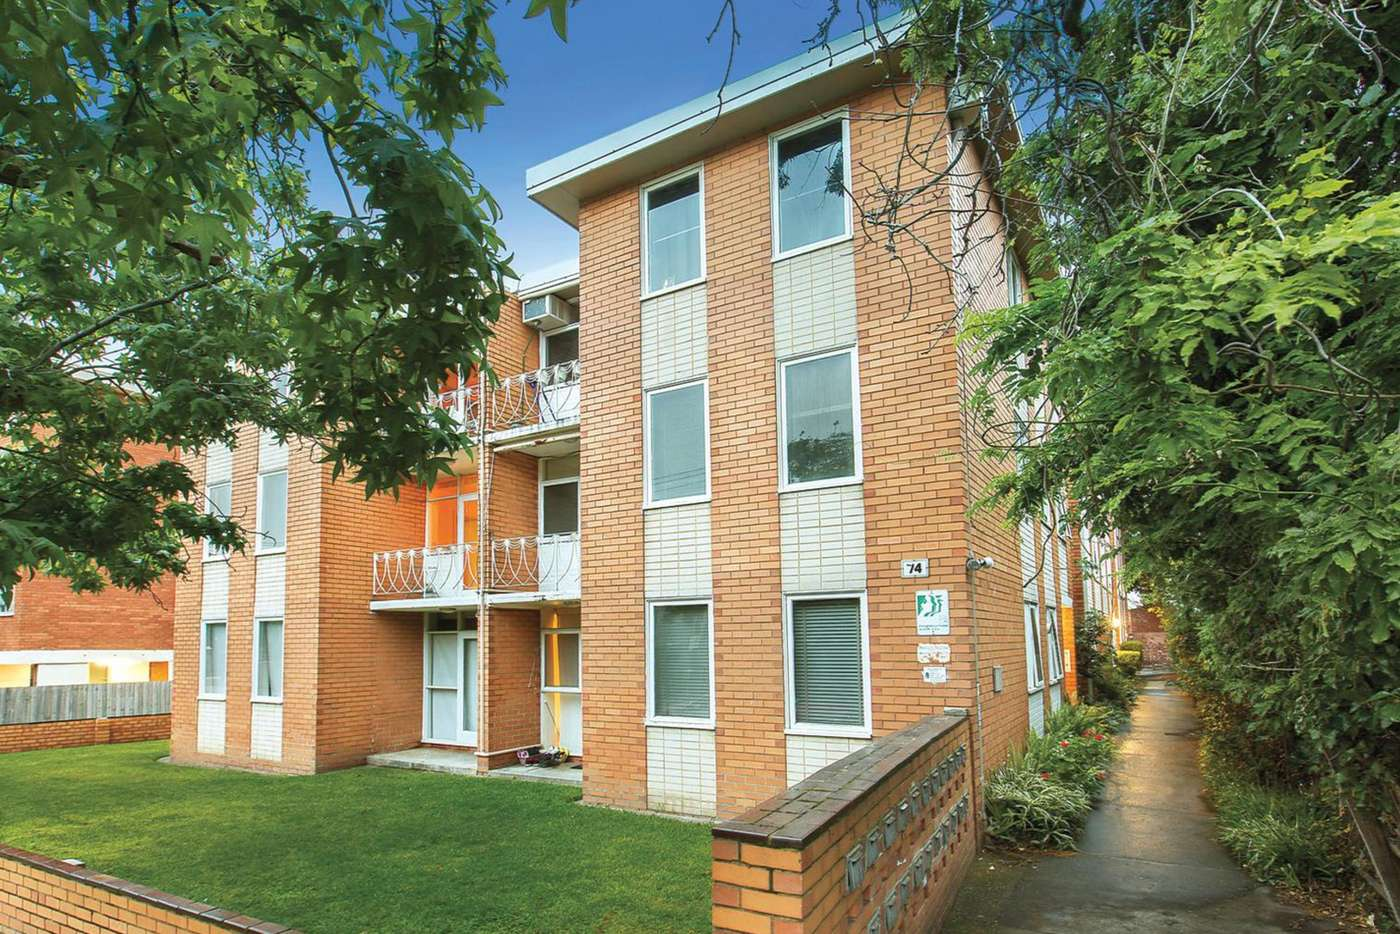 Main view of Homely apartment listing, 5/74 Denbigh Road, Armadale VIC 3143